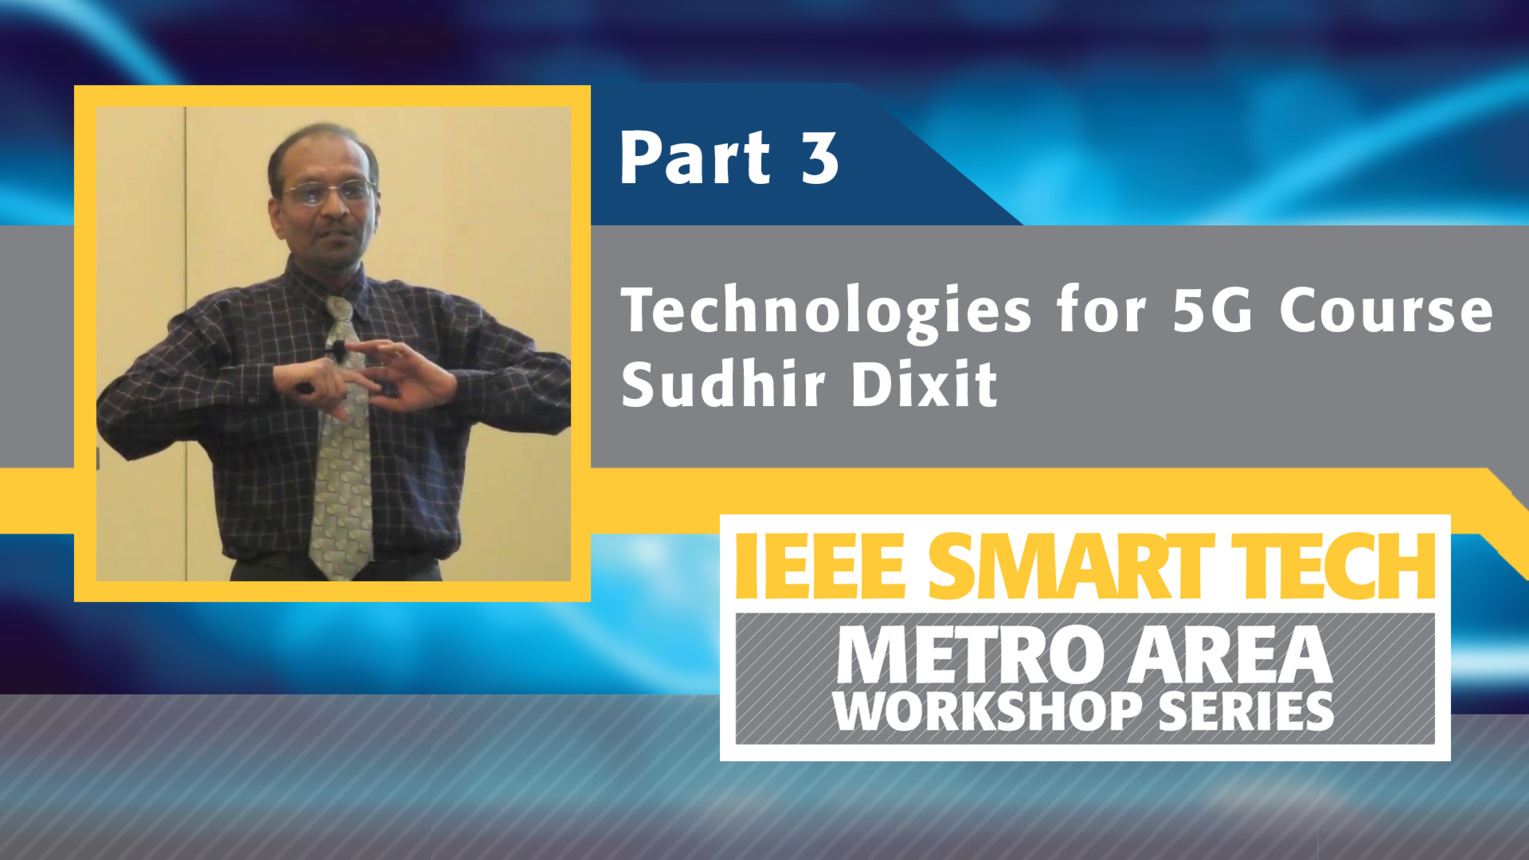 Technologies for 5G course, Part 3 - IEEE Smart Tech Workshop